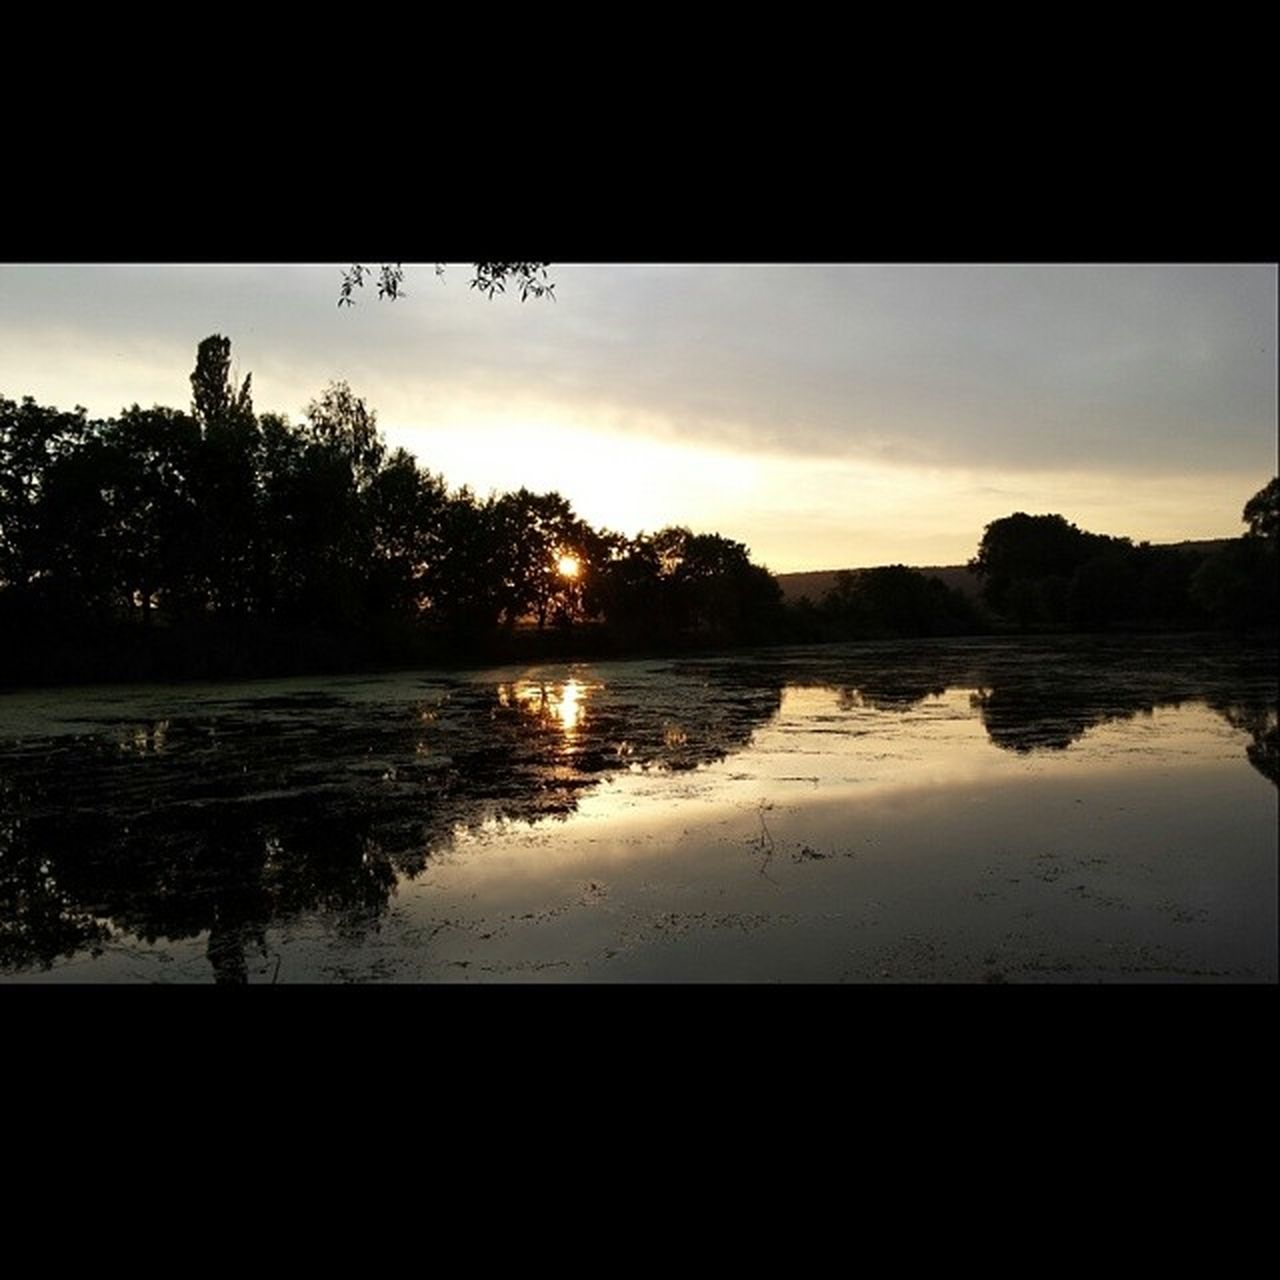 silhouette, sunset, reflection, water, tree, tranquil scene, sky, nature, lake, scenics, beauty in nature, tranquility, outdoors, no people, day